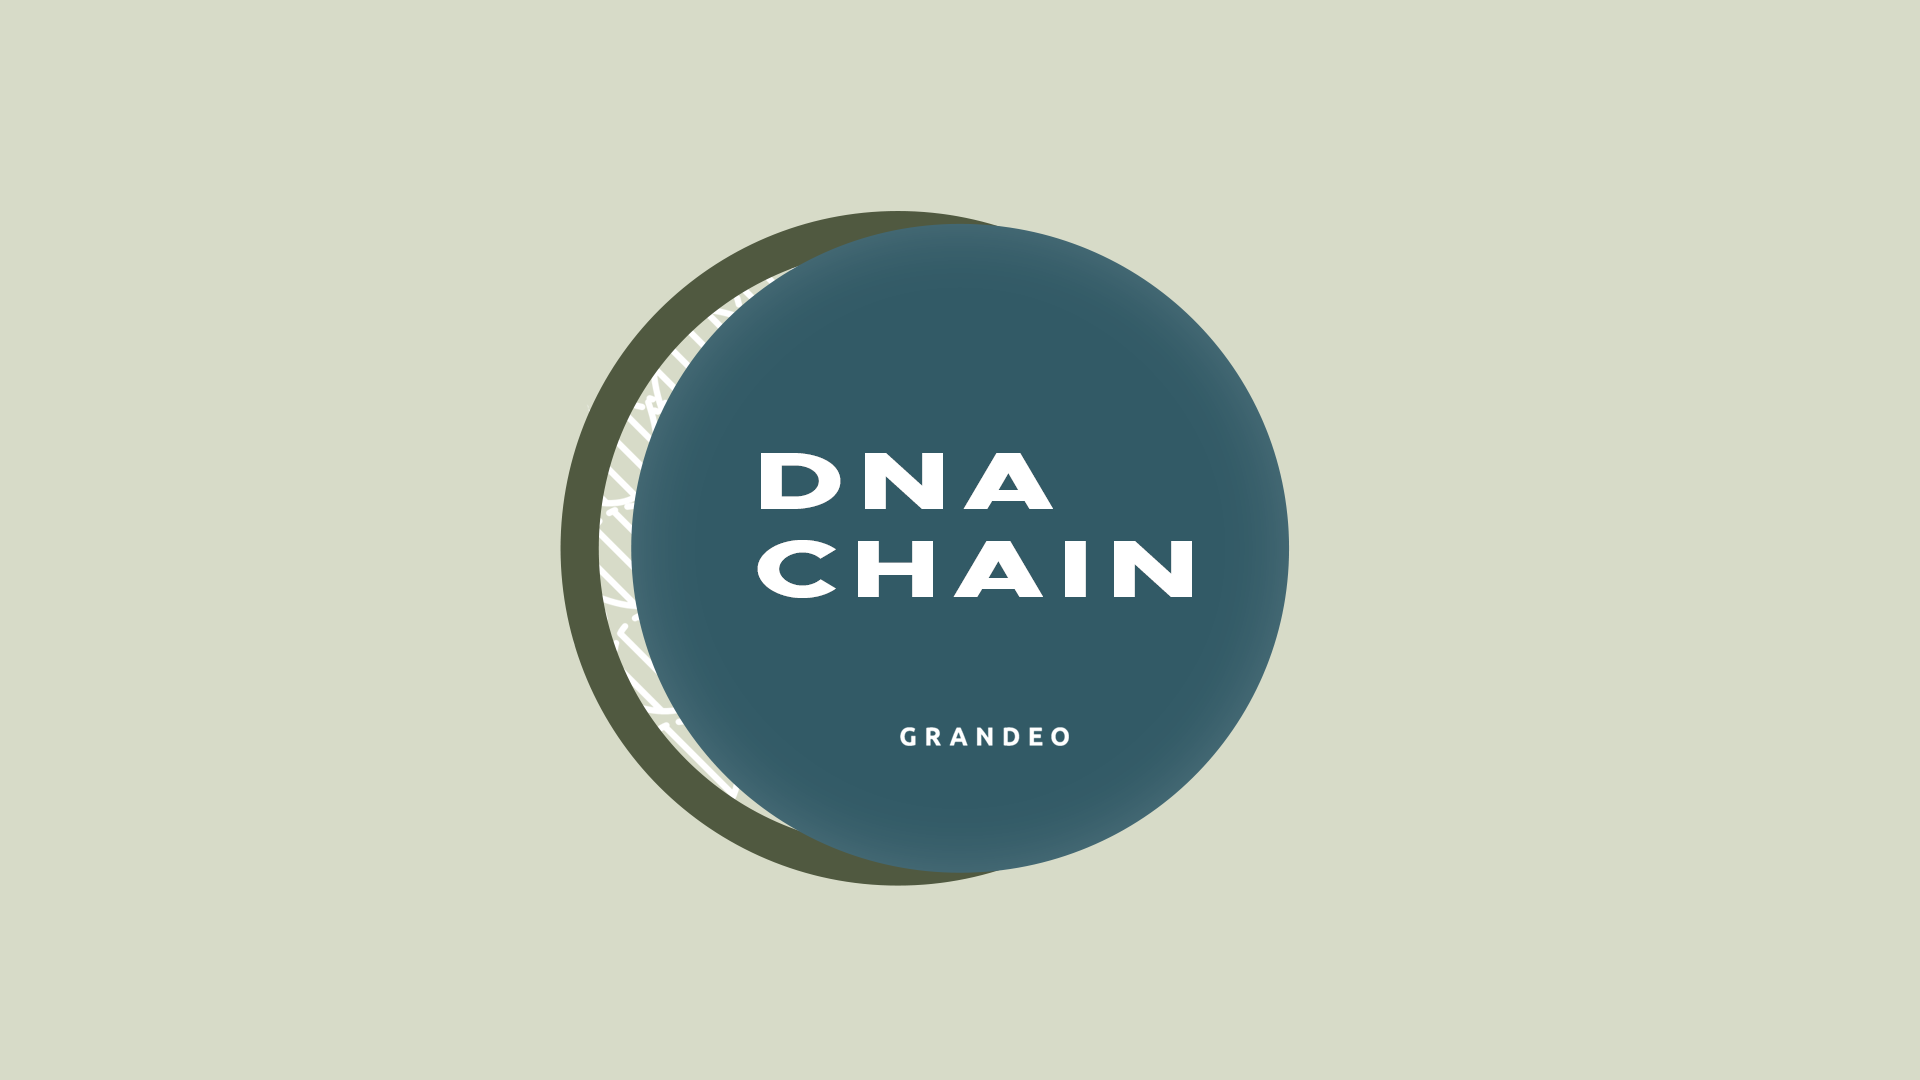 DNA CHAIN - Blockchain Genome Storage   Our genome blockchain project, expanding into new areas of blockchain research and bio-synthesis.